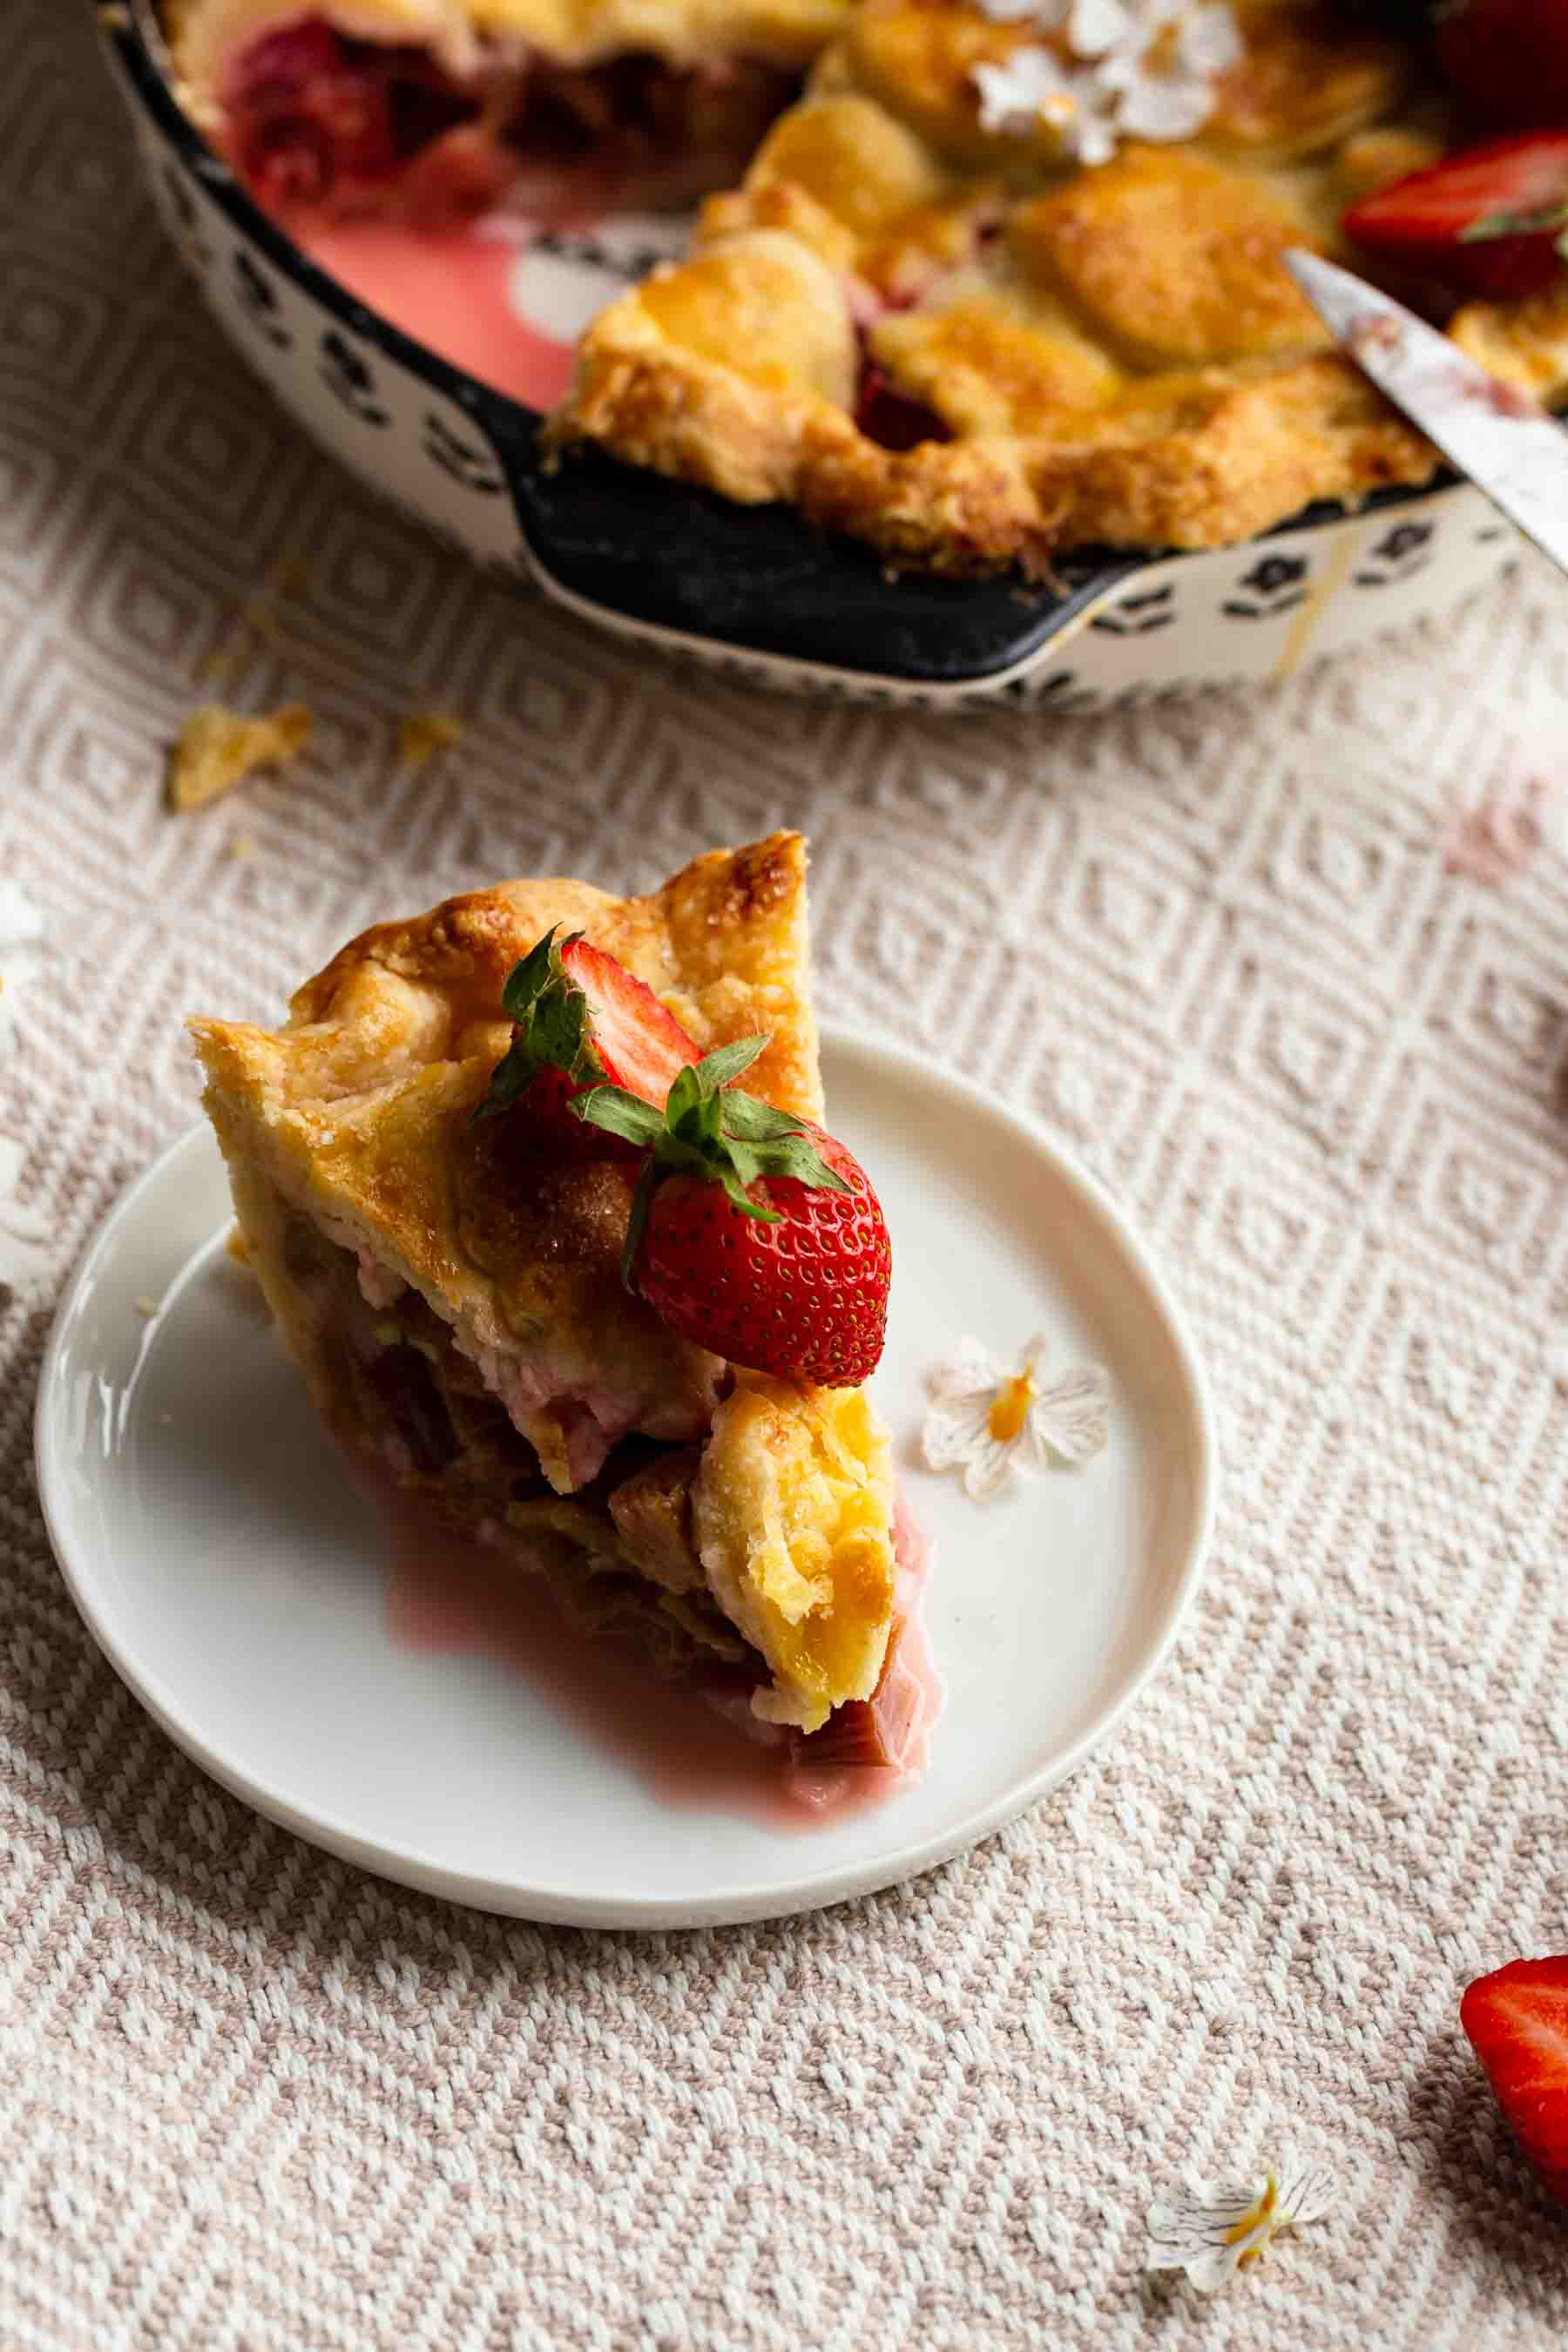 rhubarb pie on plate with strawberry on top